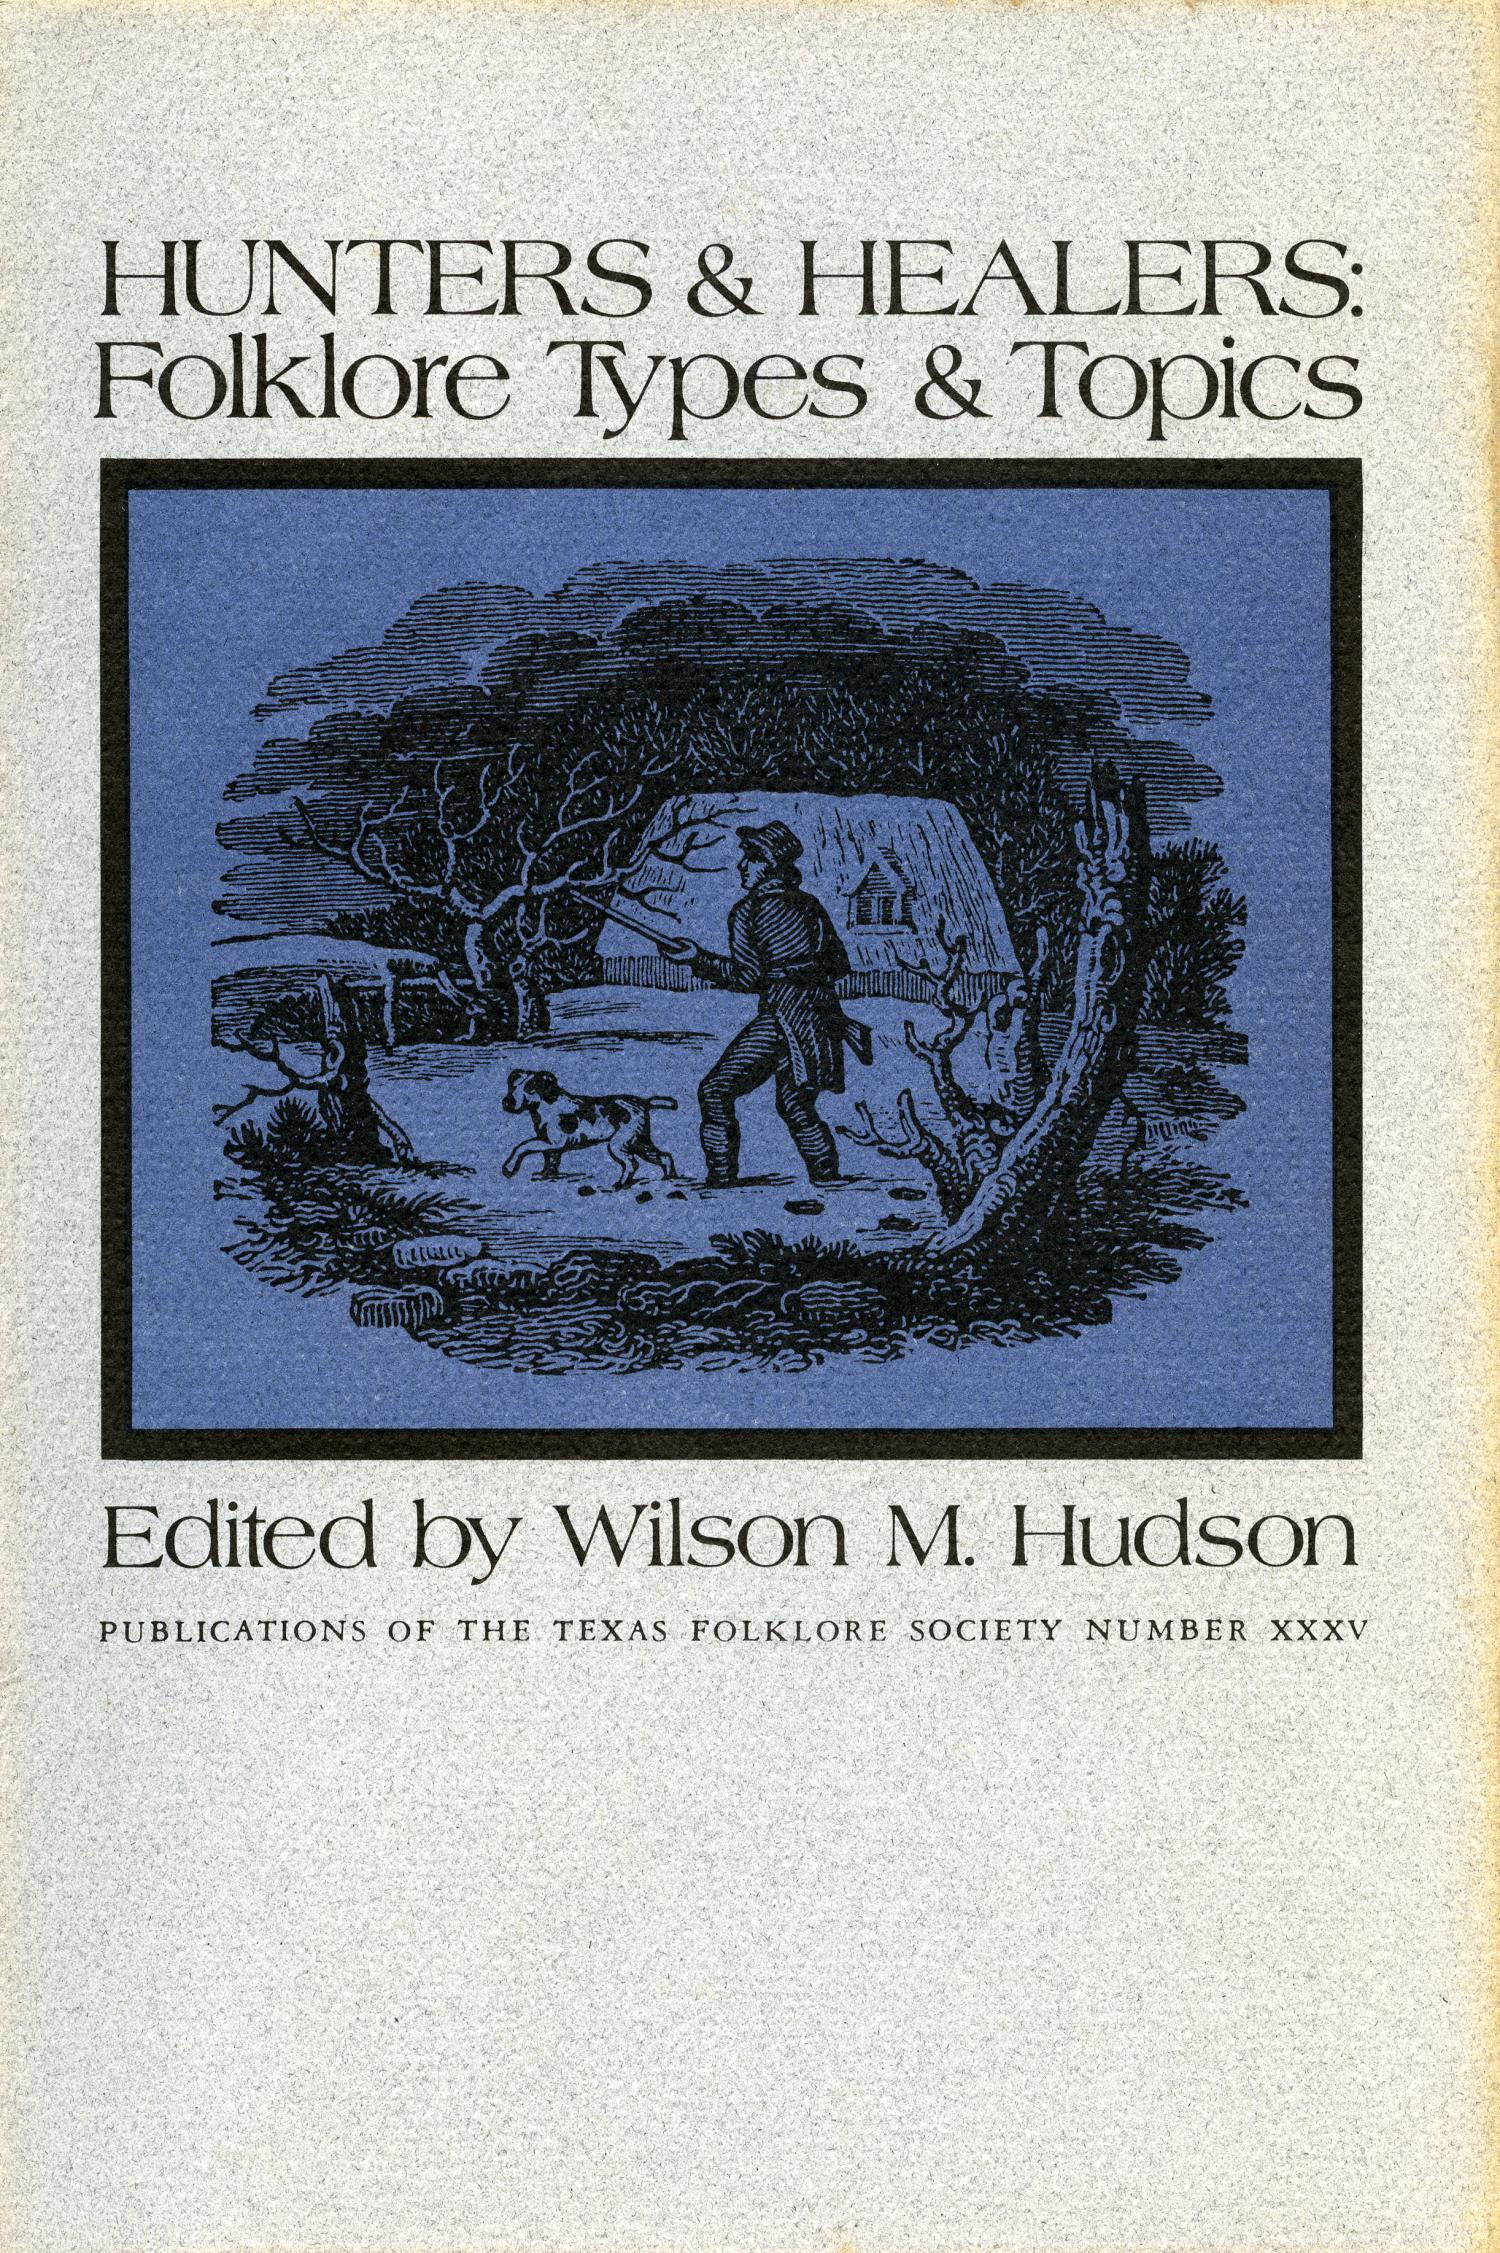 Hunters & Healers: Folklore Types & Topics                                                                                                      Front Cover